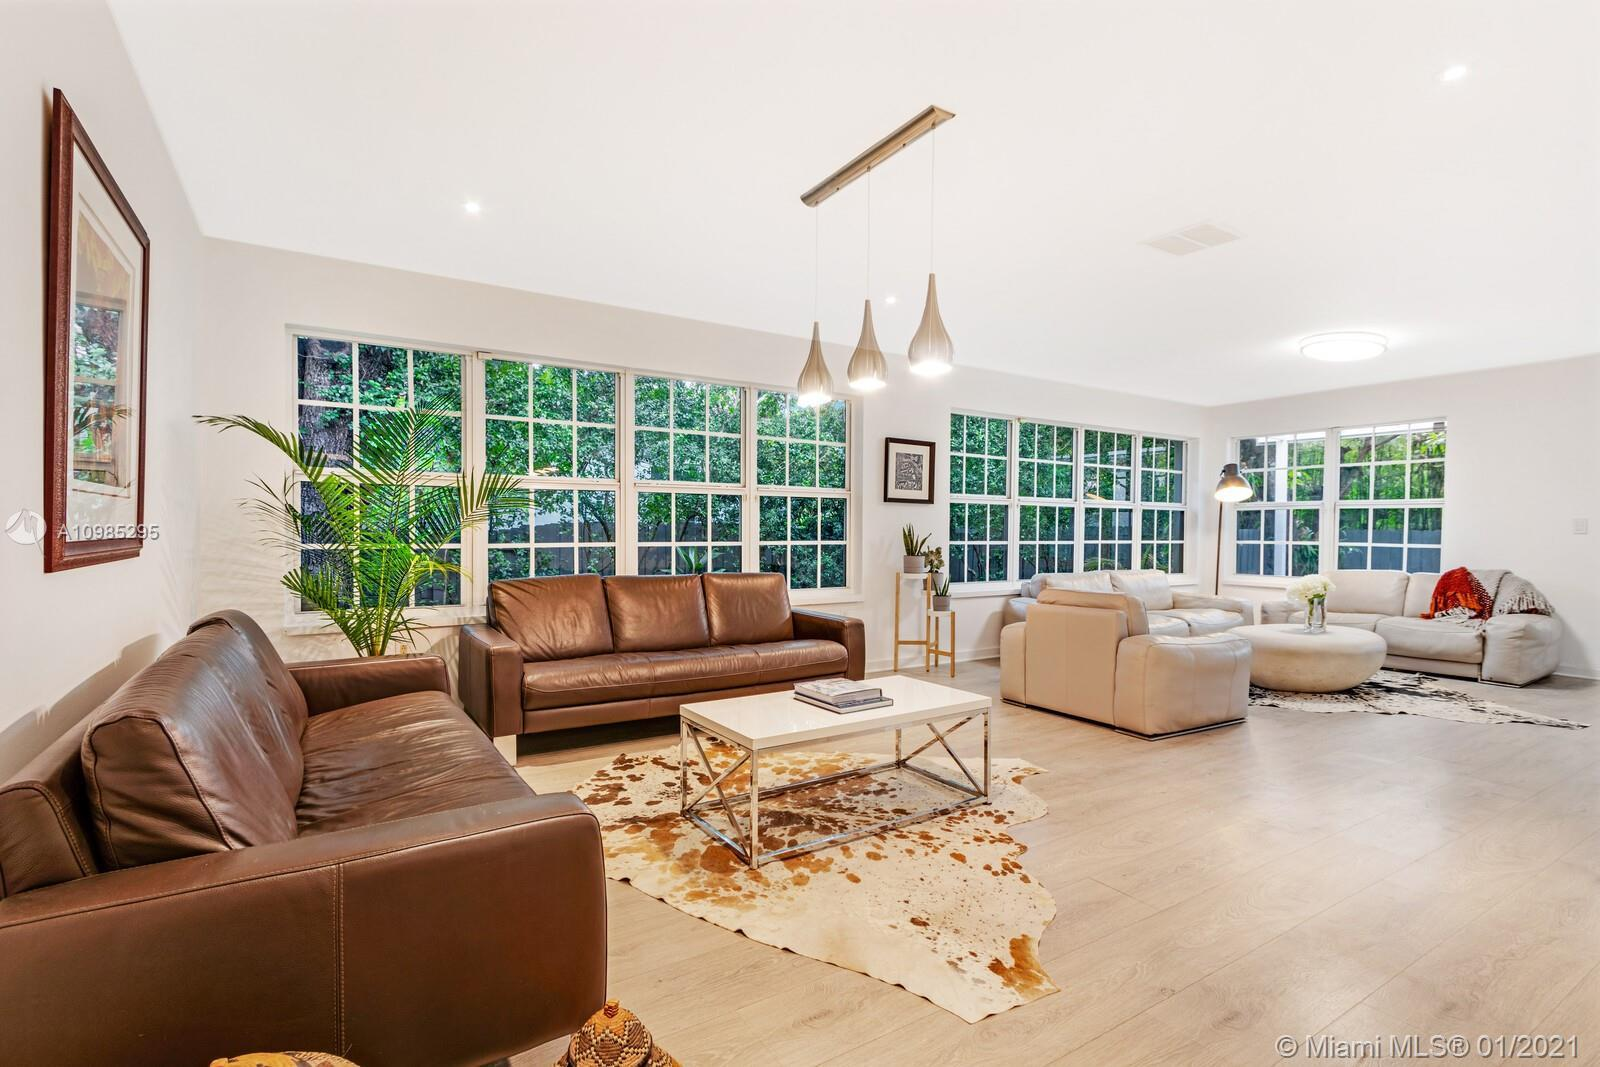 Charming Fully Renovated 3 bed/2 bath in the heart of Miami Shores. Close walking distance to downto